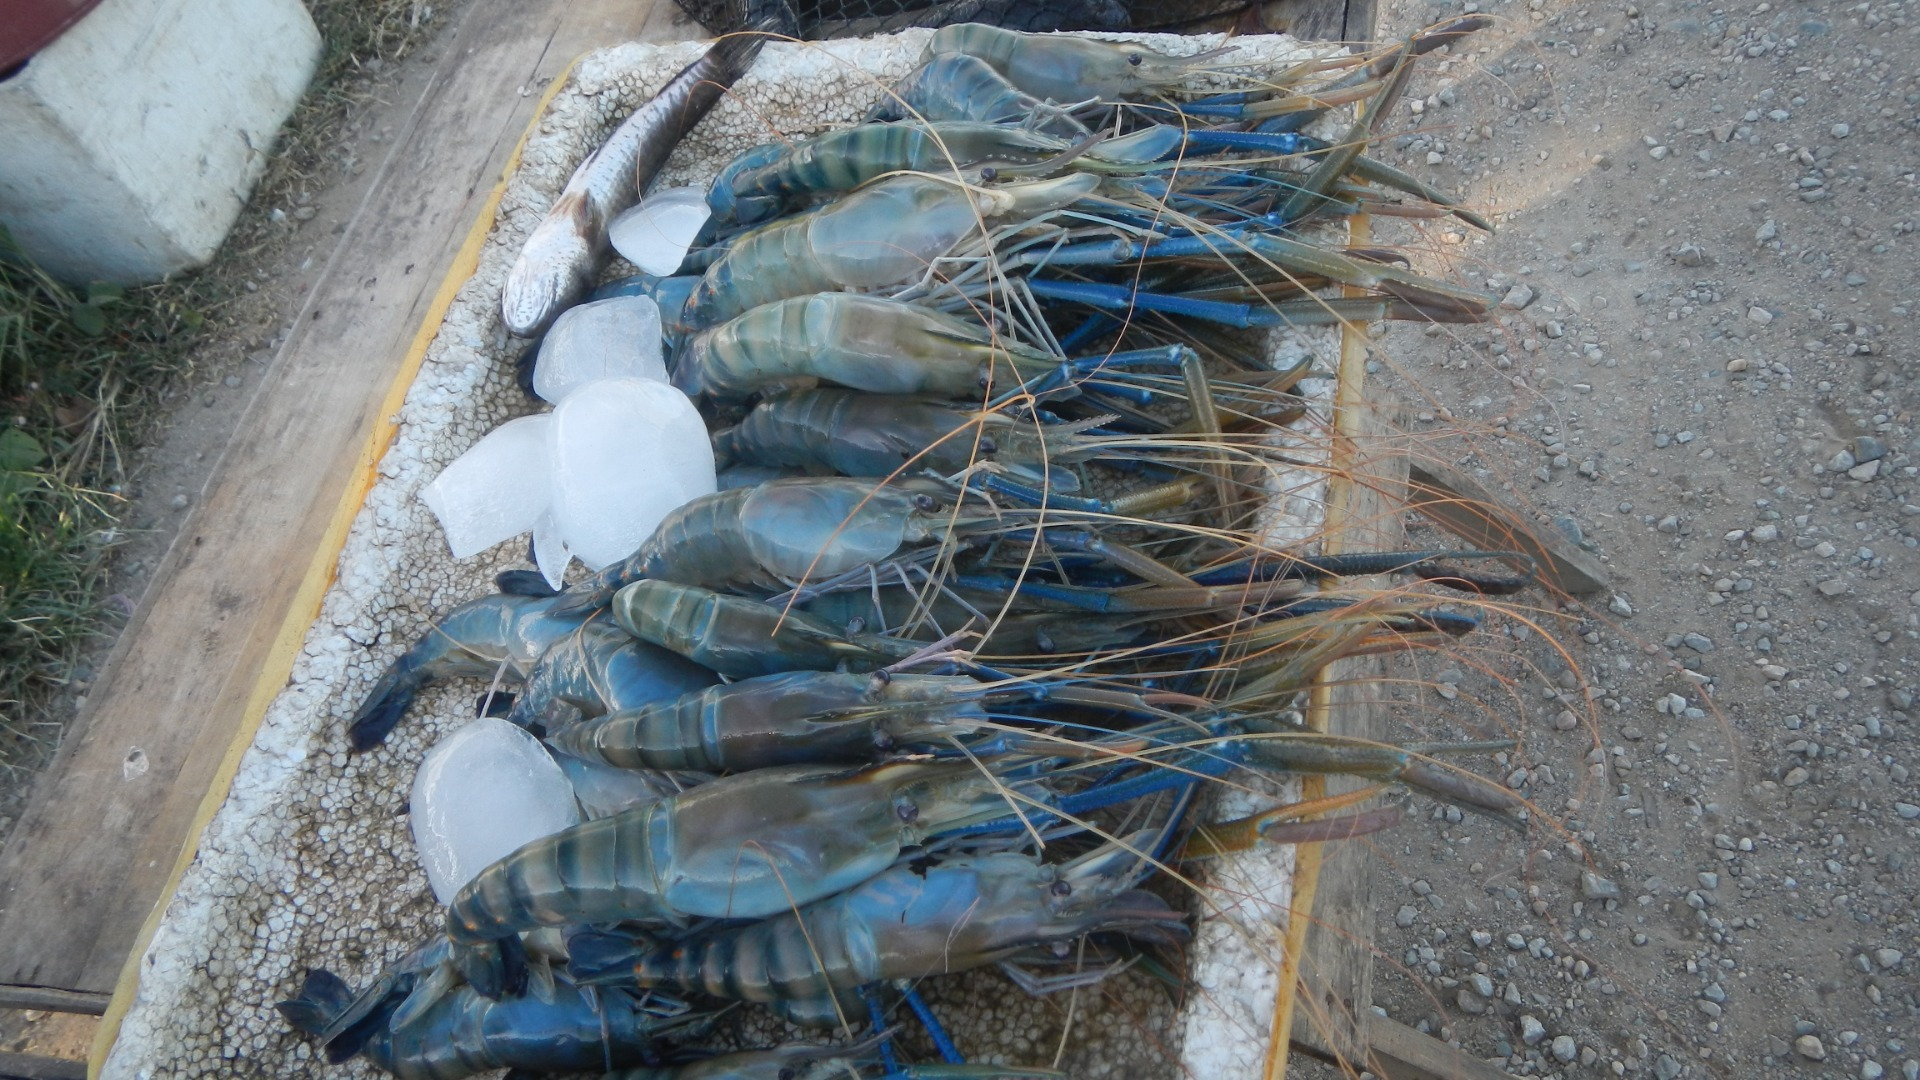 Prawn aquaculture could provide income – while stopping disease-spreading snails